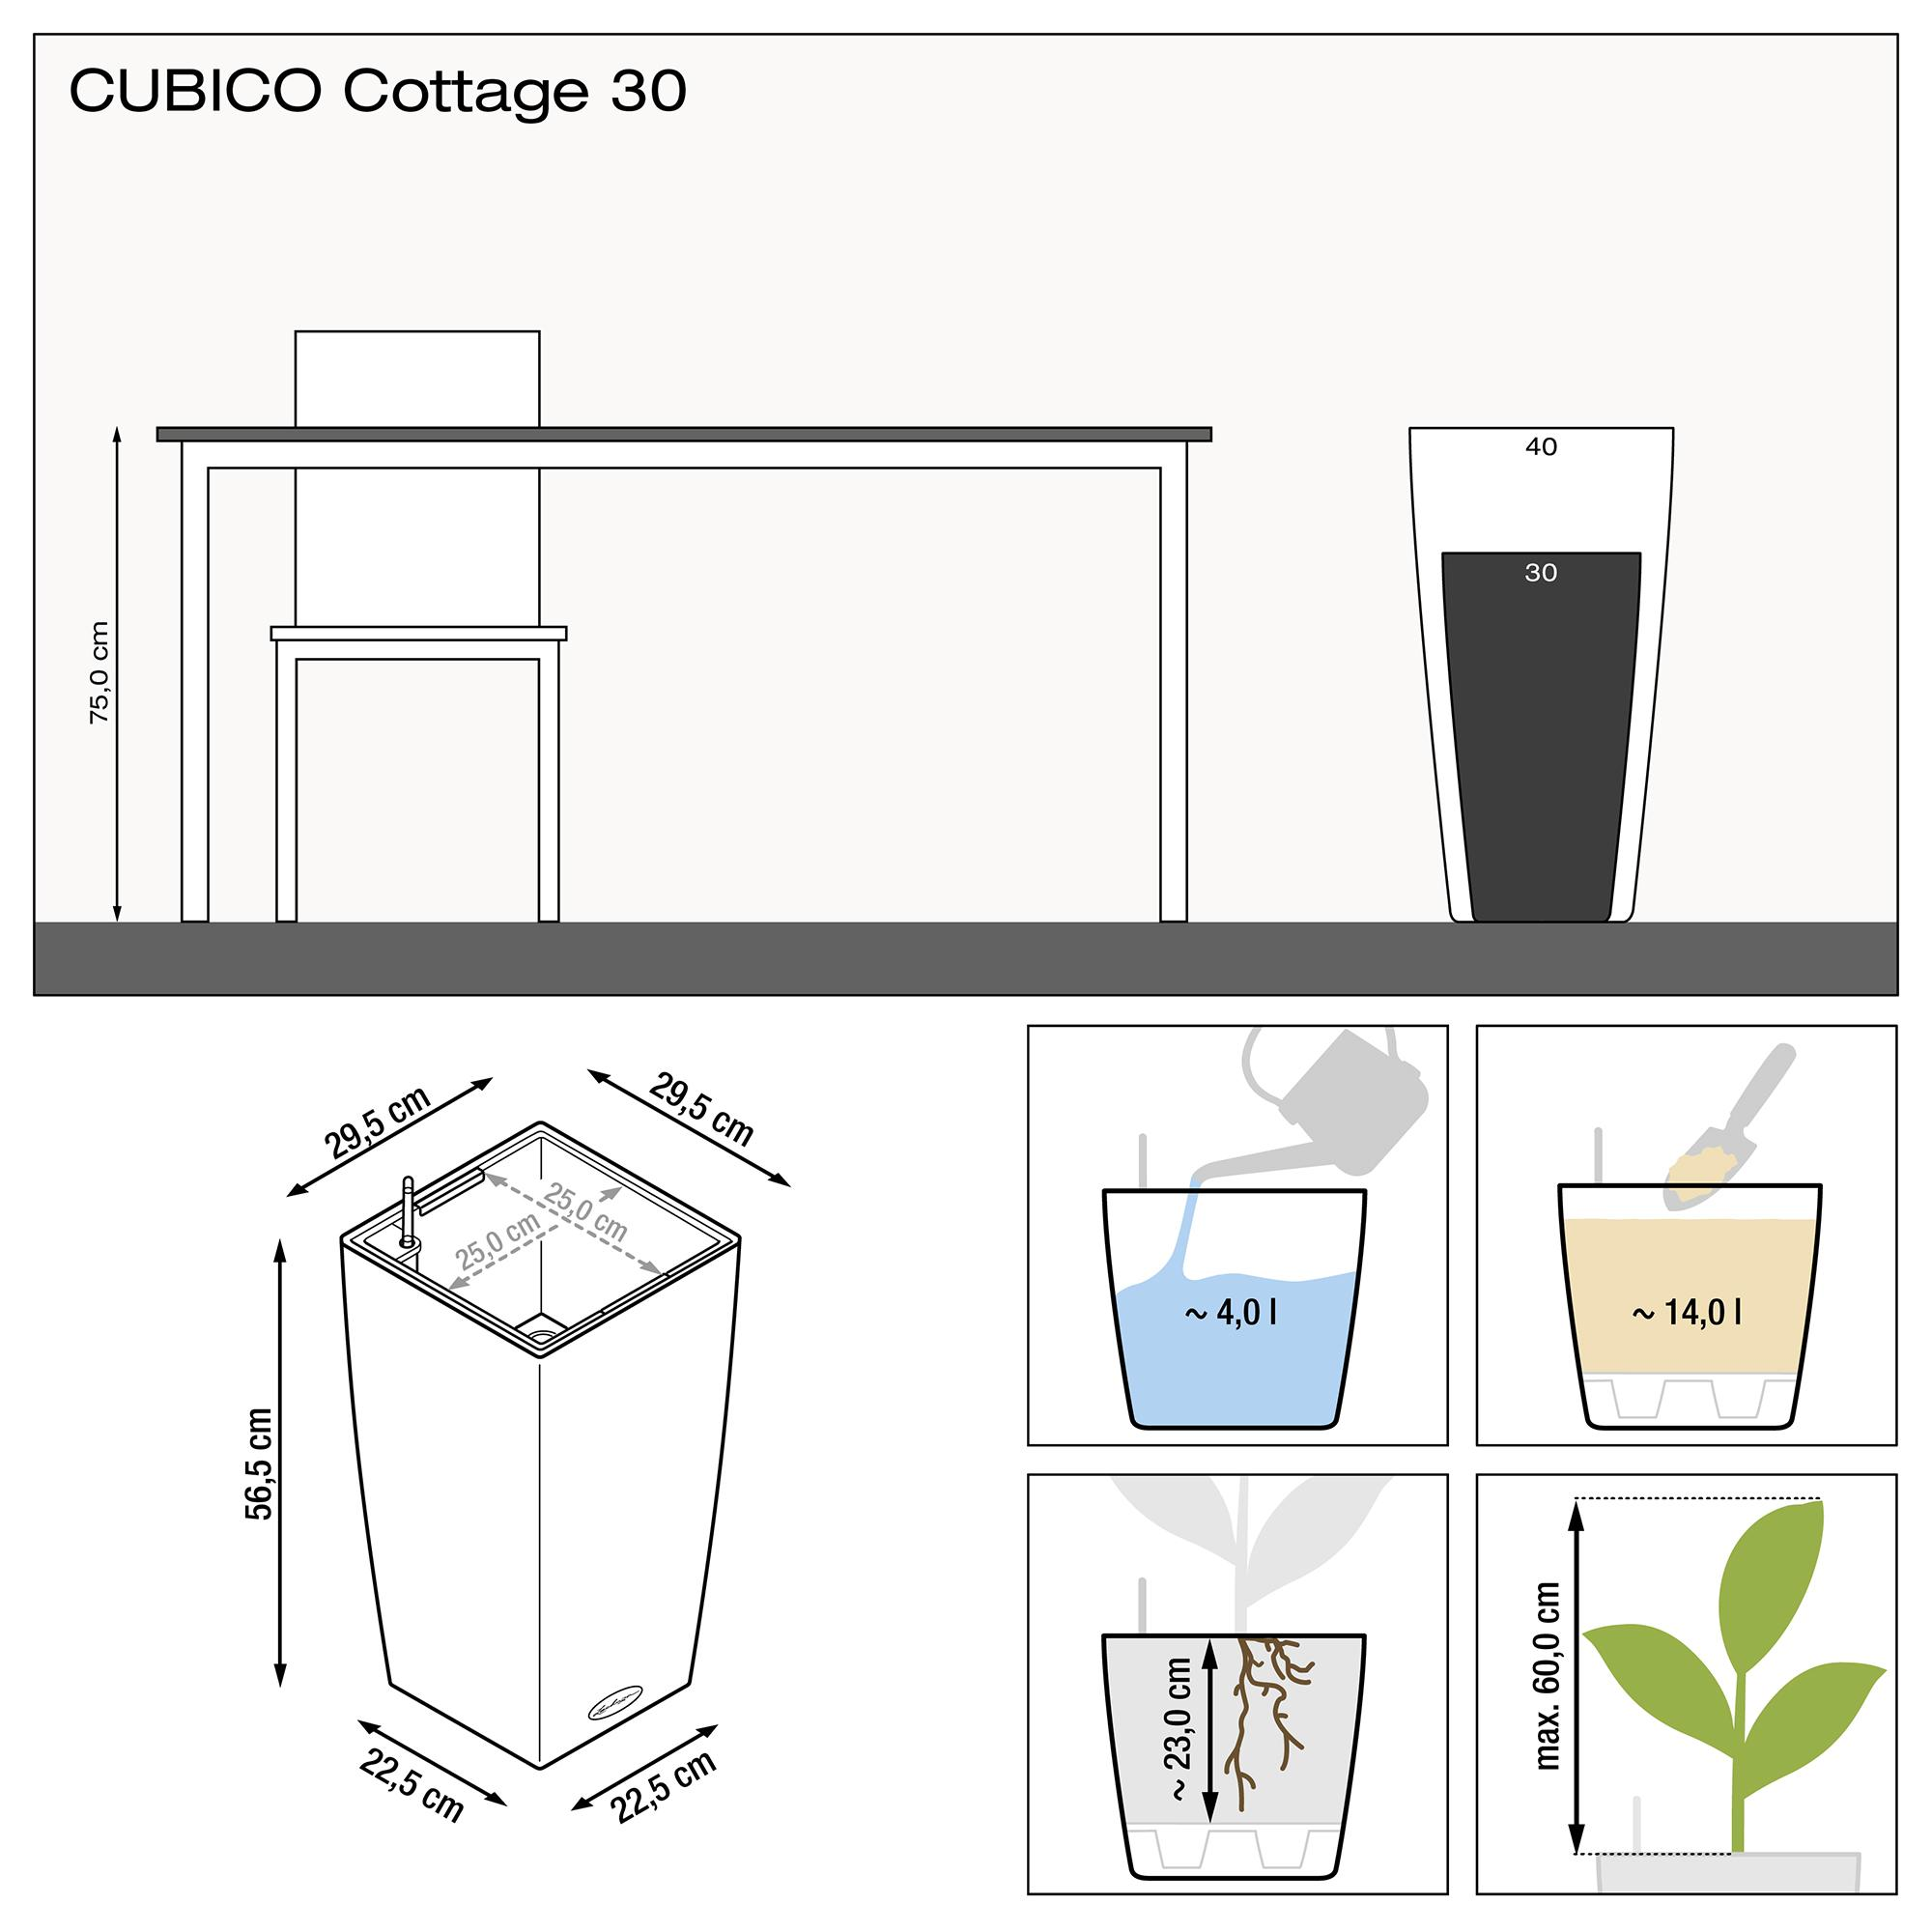 le_cubico-cottage30_product_addi_nz